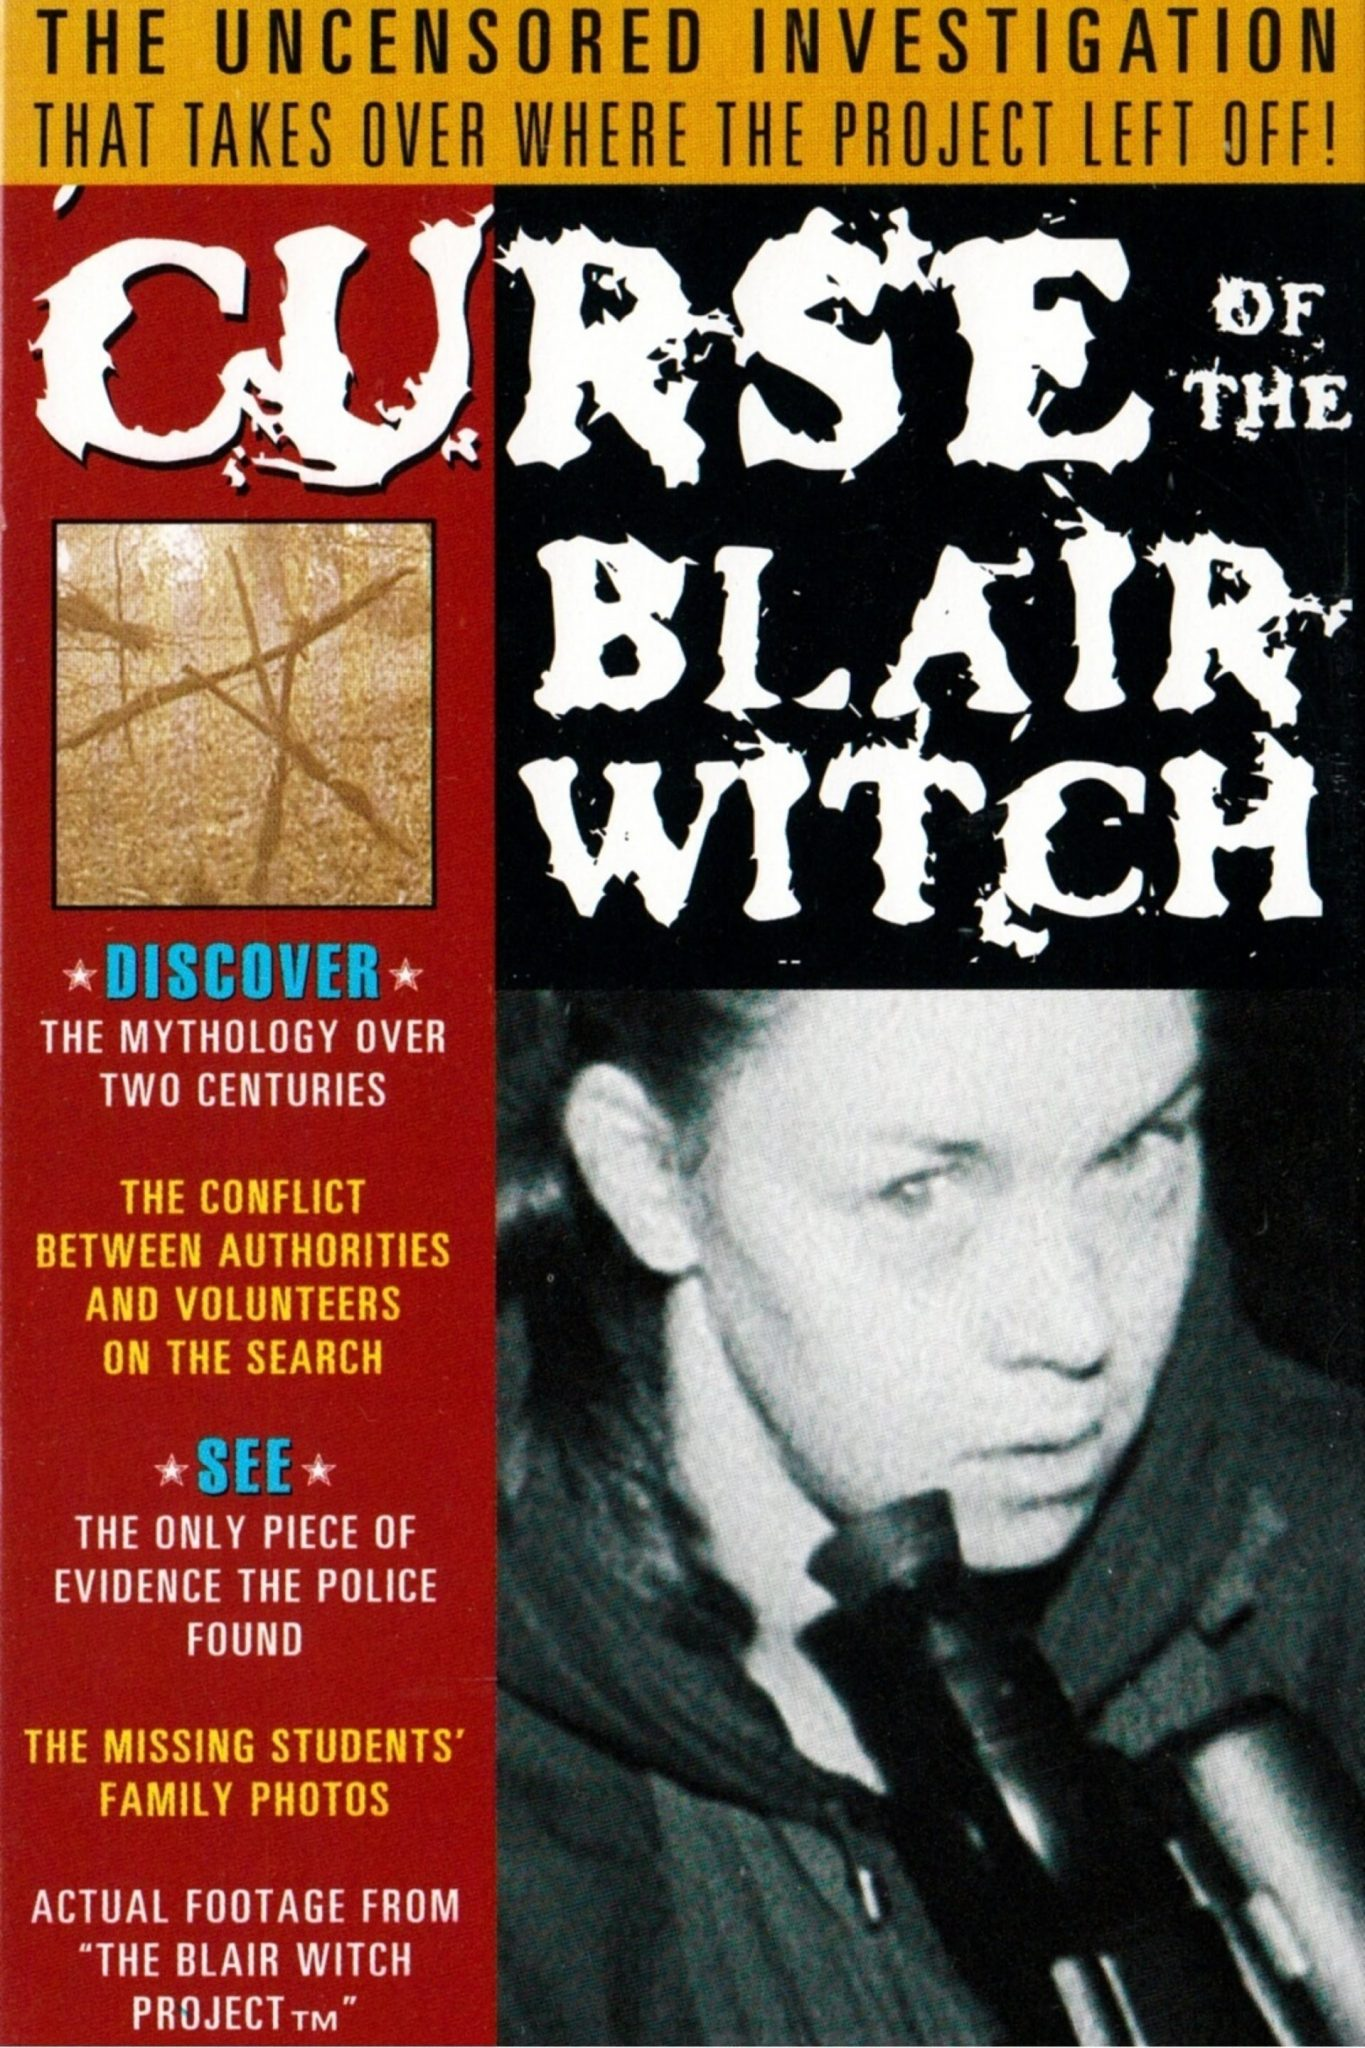 maxresdefault 1 - The Making of The Blair Witch Project: Part 7 - The Embiggening